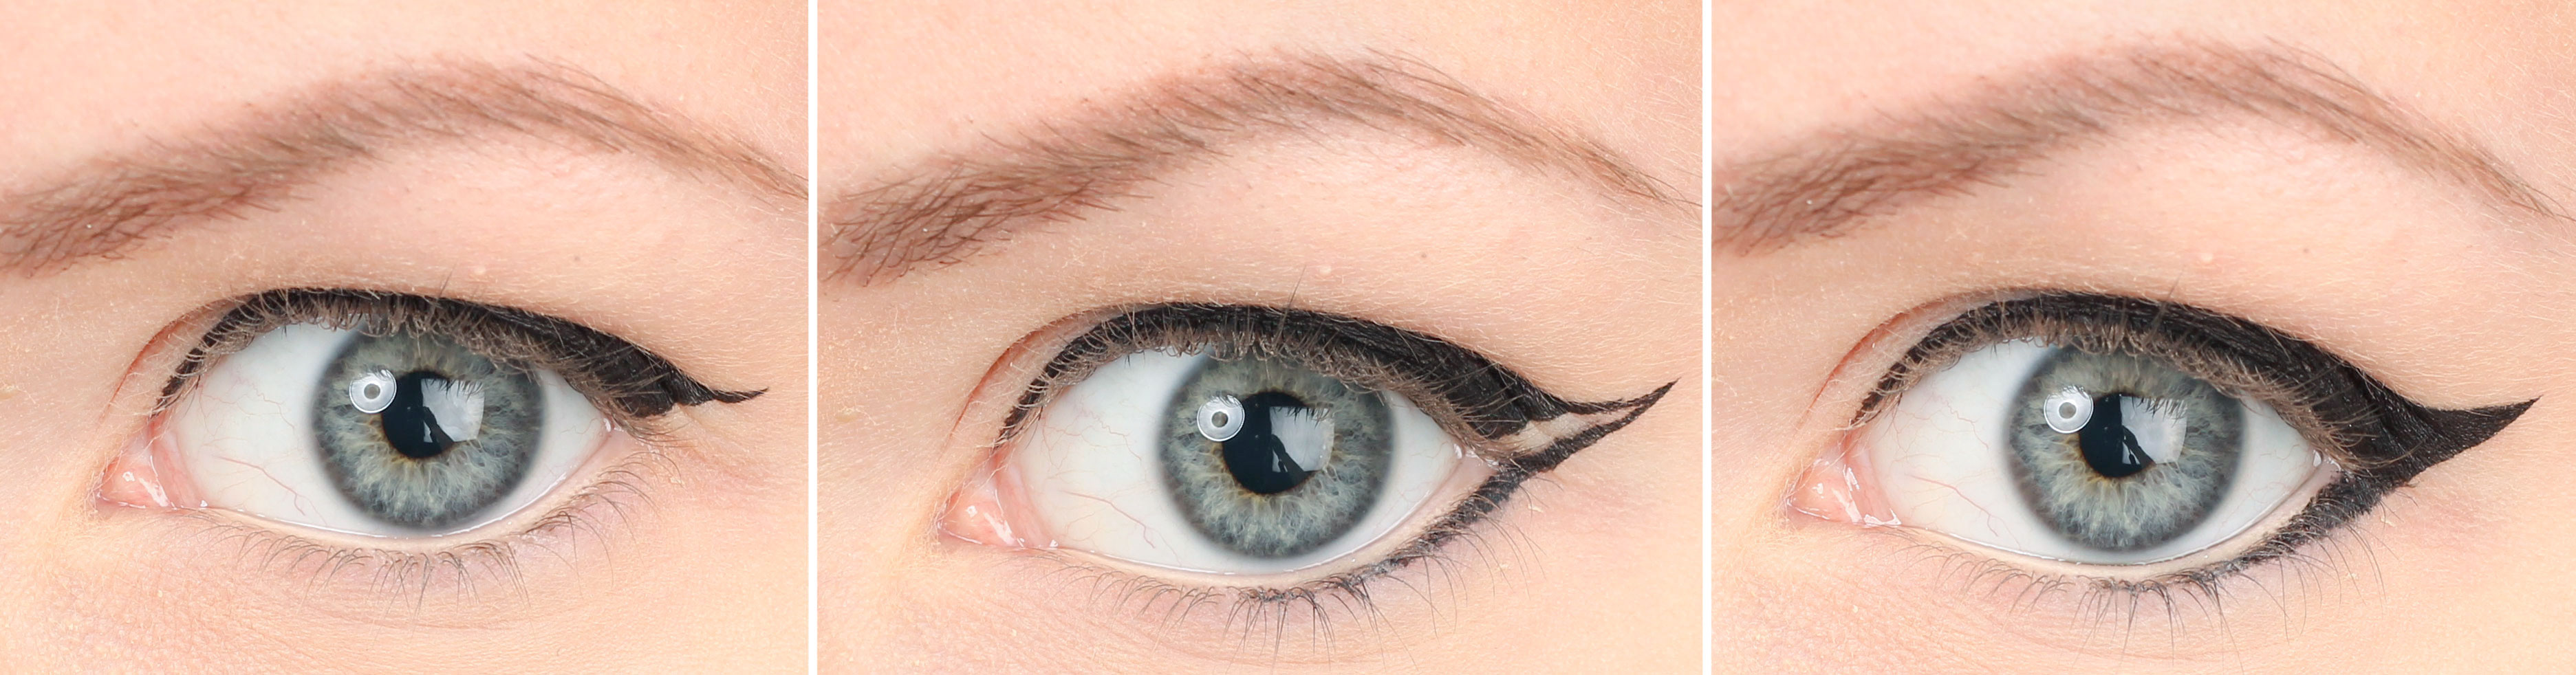 eyeliner-hooded-eyes-tutorial_111